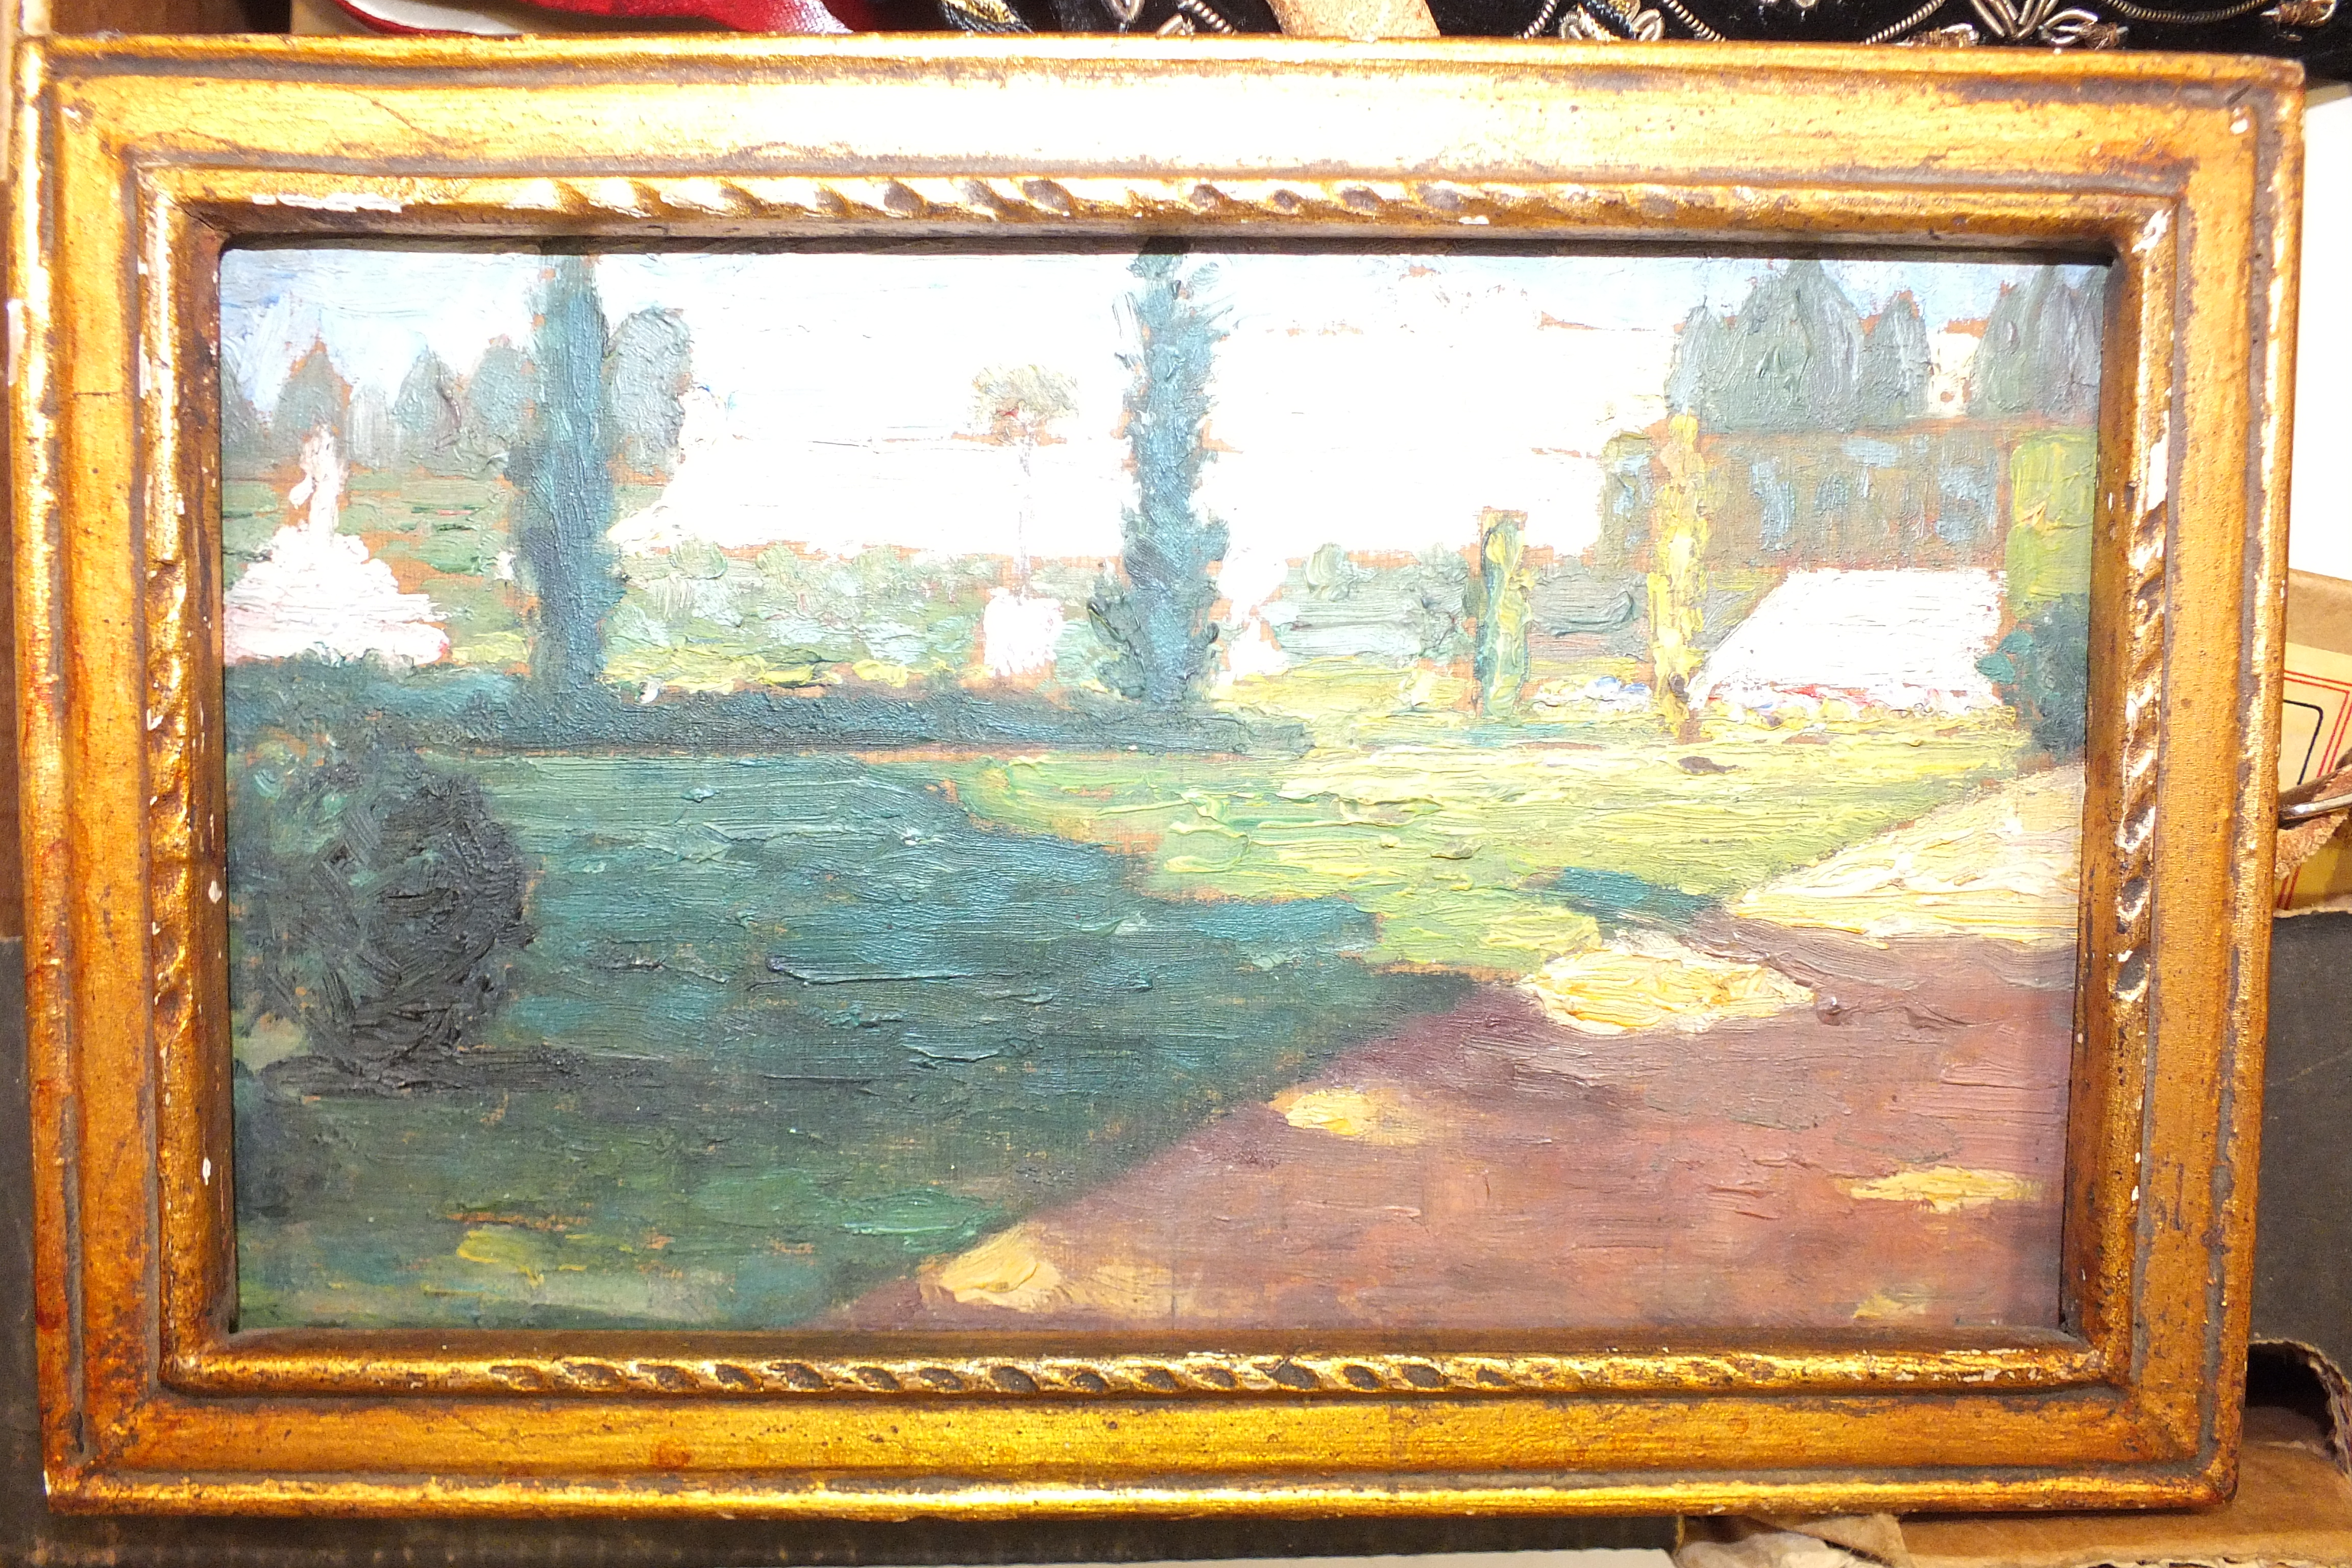 Lot 116 - Ch Faurie?, 'Versailles', oil on panel, inscribed in pencil and dated 1910, 9 x 16cm, a pair of